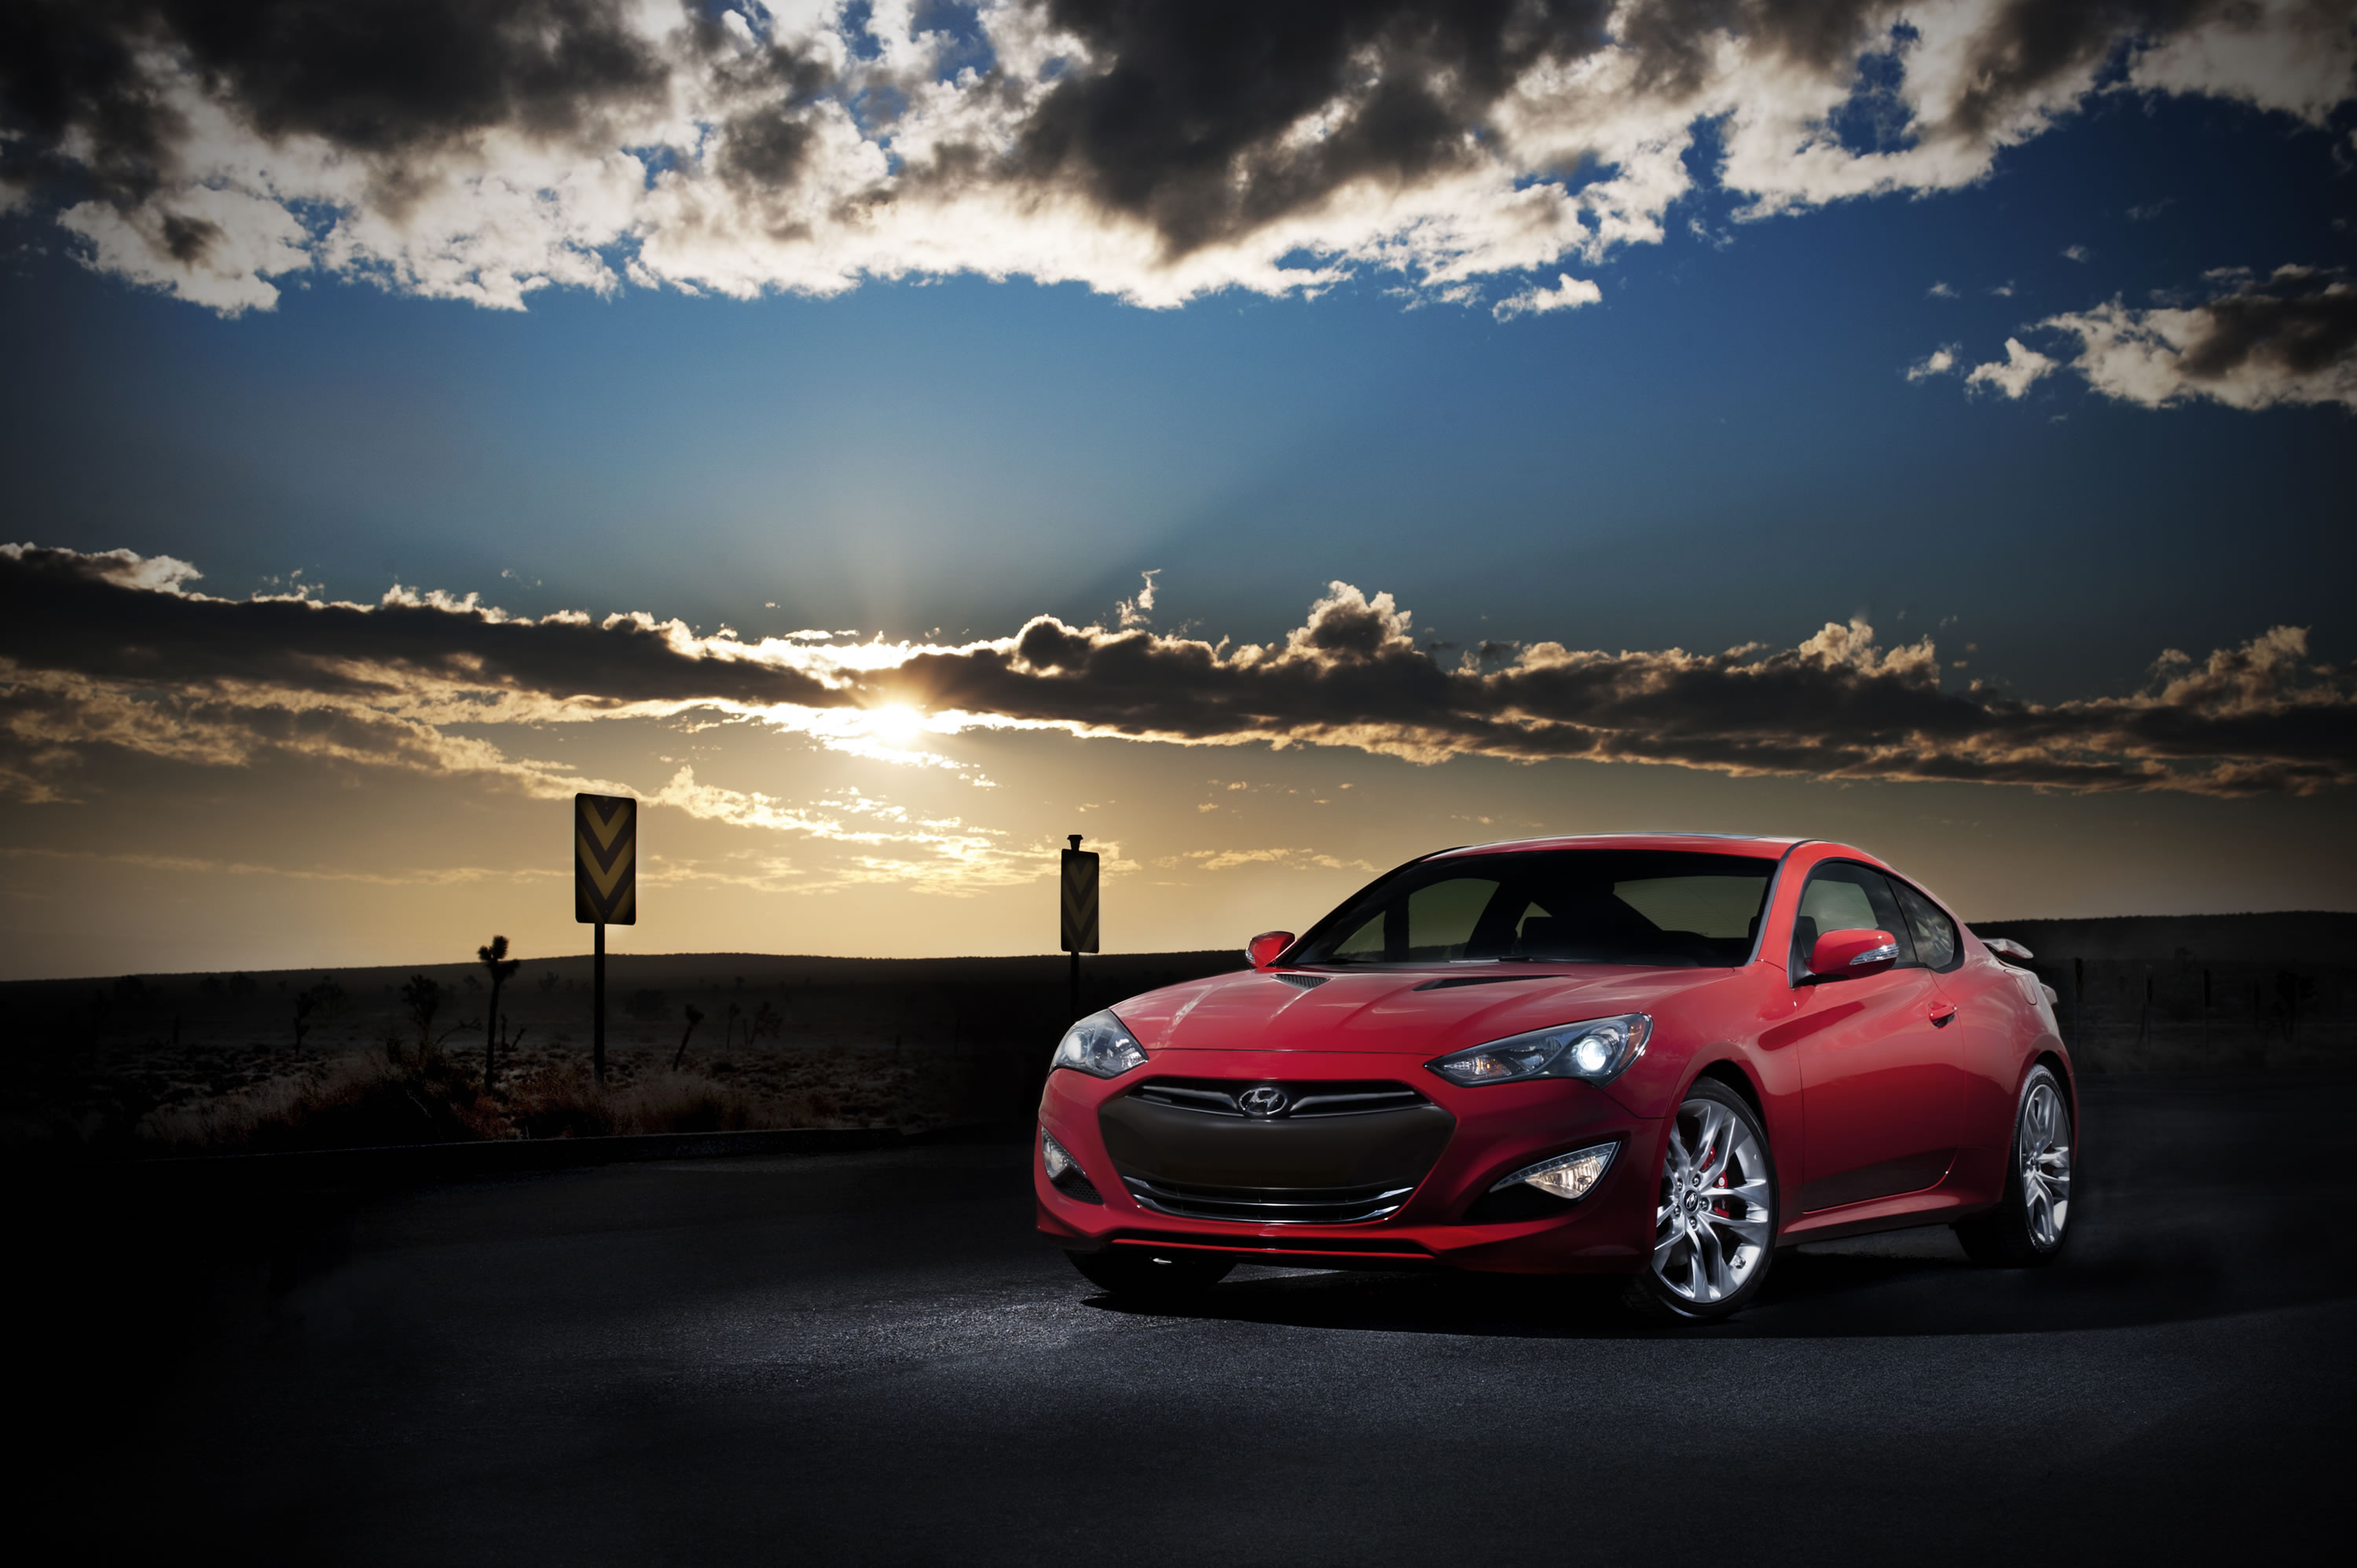 2013 hyundai genesis coupe 3 8 grand touring photos specs and review rs. Black Bedroom Furniture Sets. Home Design Ideas